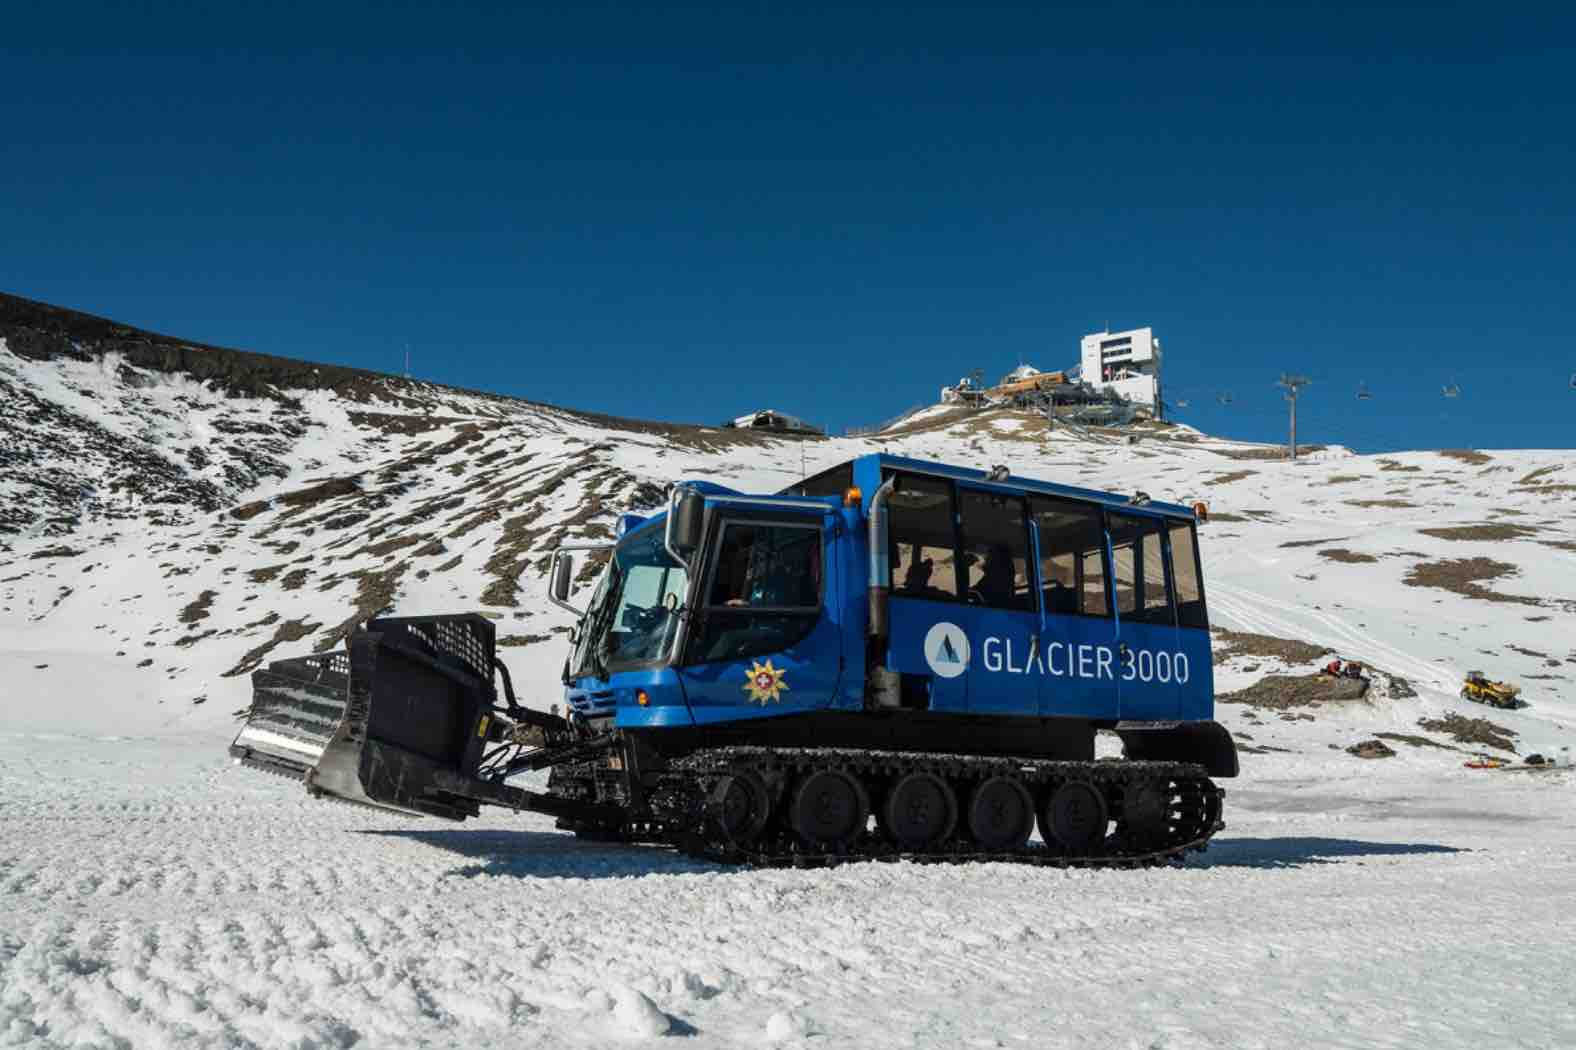 A Journey Across Glacier 3000 On the Snow Bus